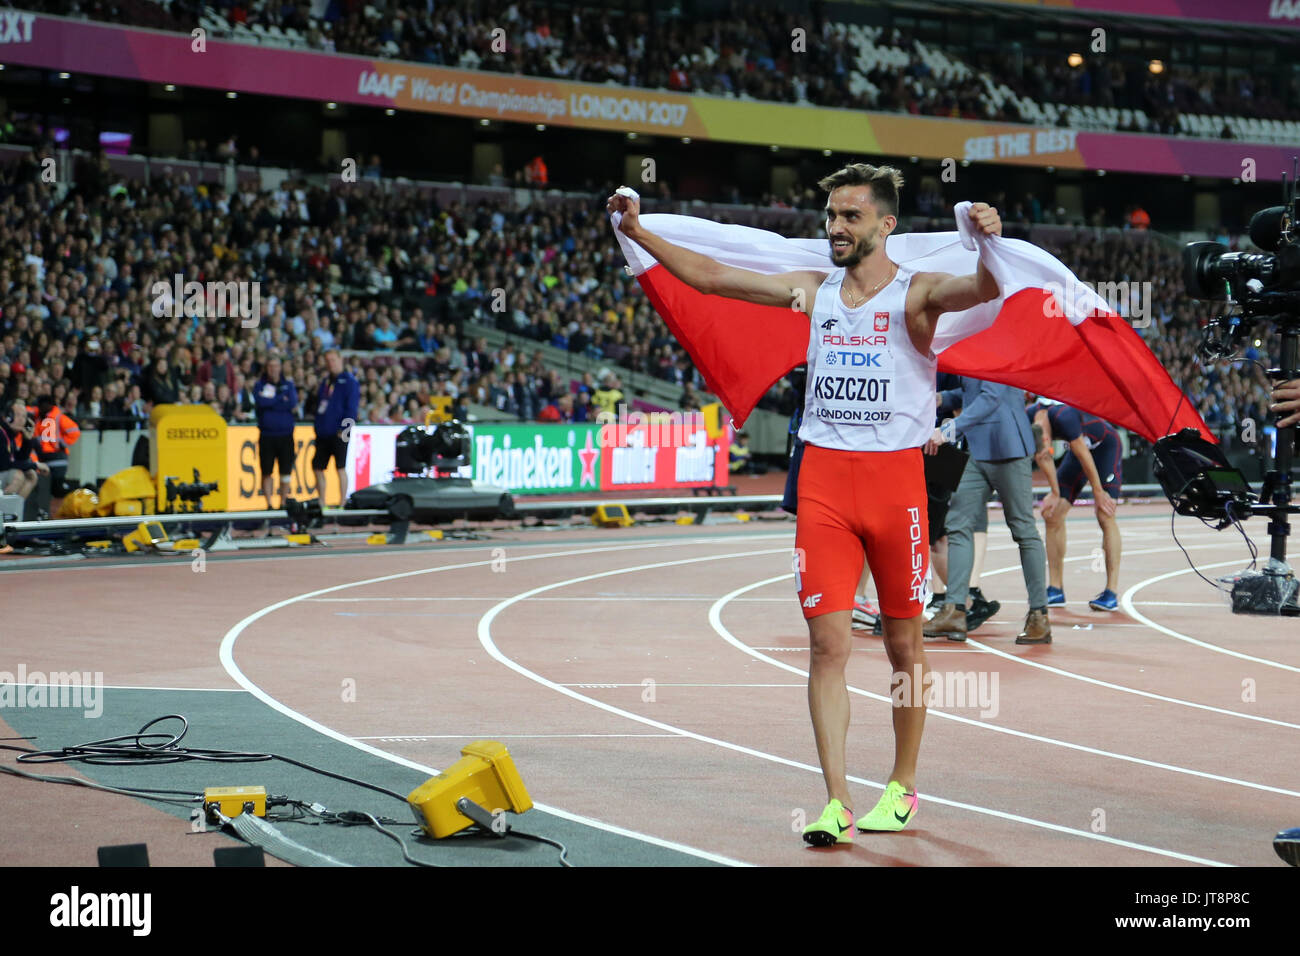 London, UK. 8th August, 2017.  Adam KSZCZOT representing Poland celebrating second place with spectators after the Men's 800m Final at the 2017, IAAF World Championships, Queen Elizabeth Olympic Park, Stratford, London, UK. Credit: Simon Balson/Alamy Live News - Stock Image